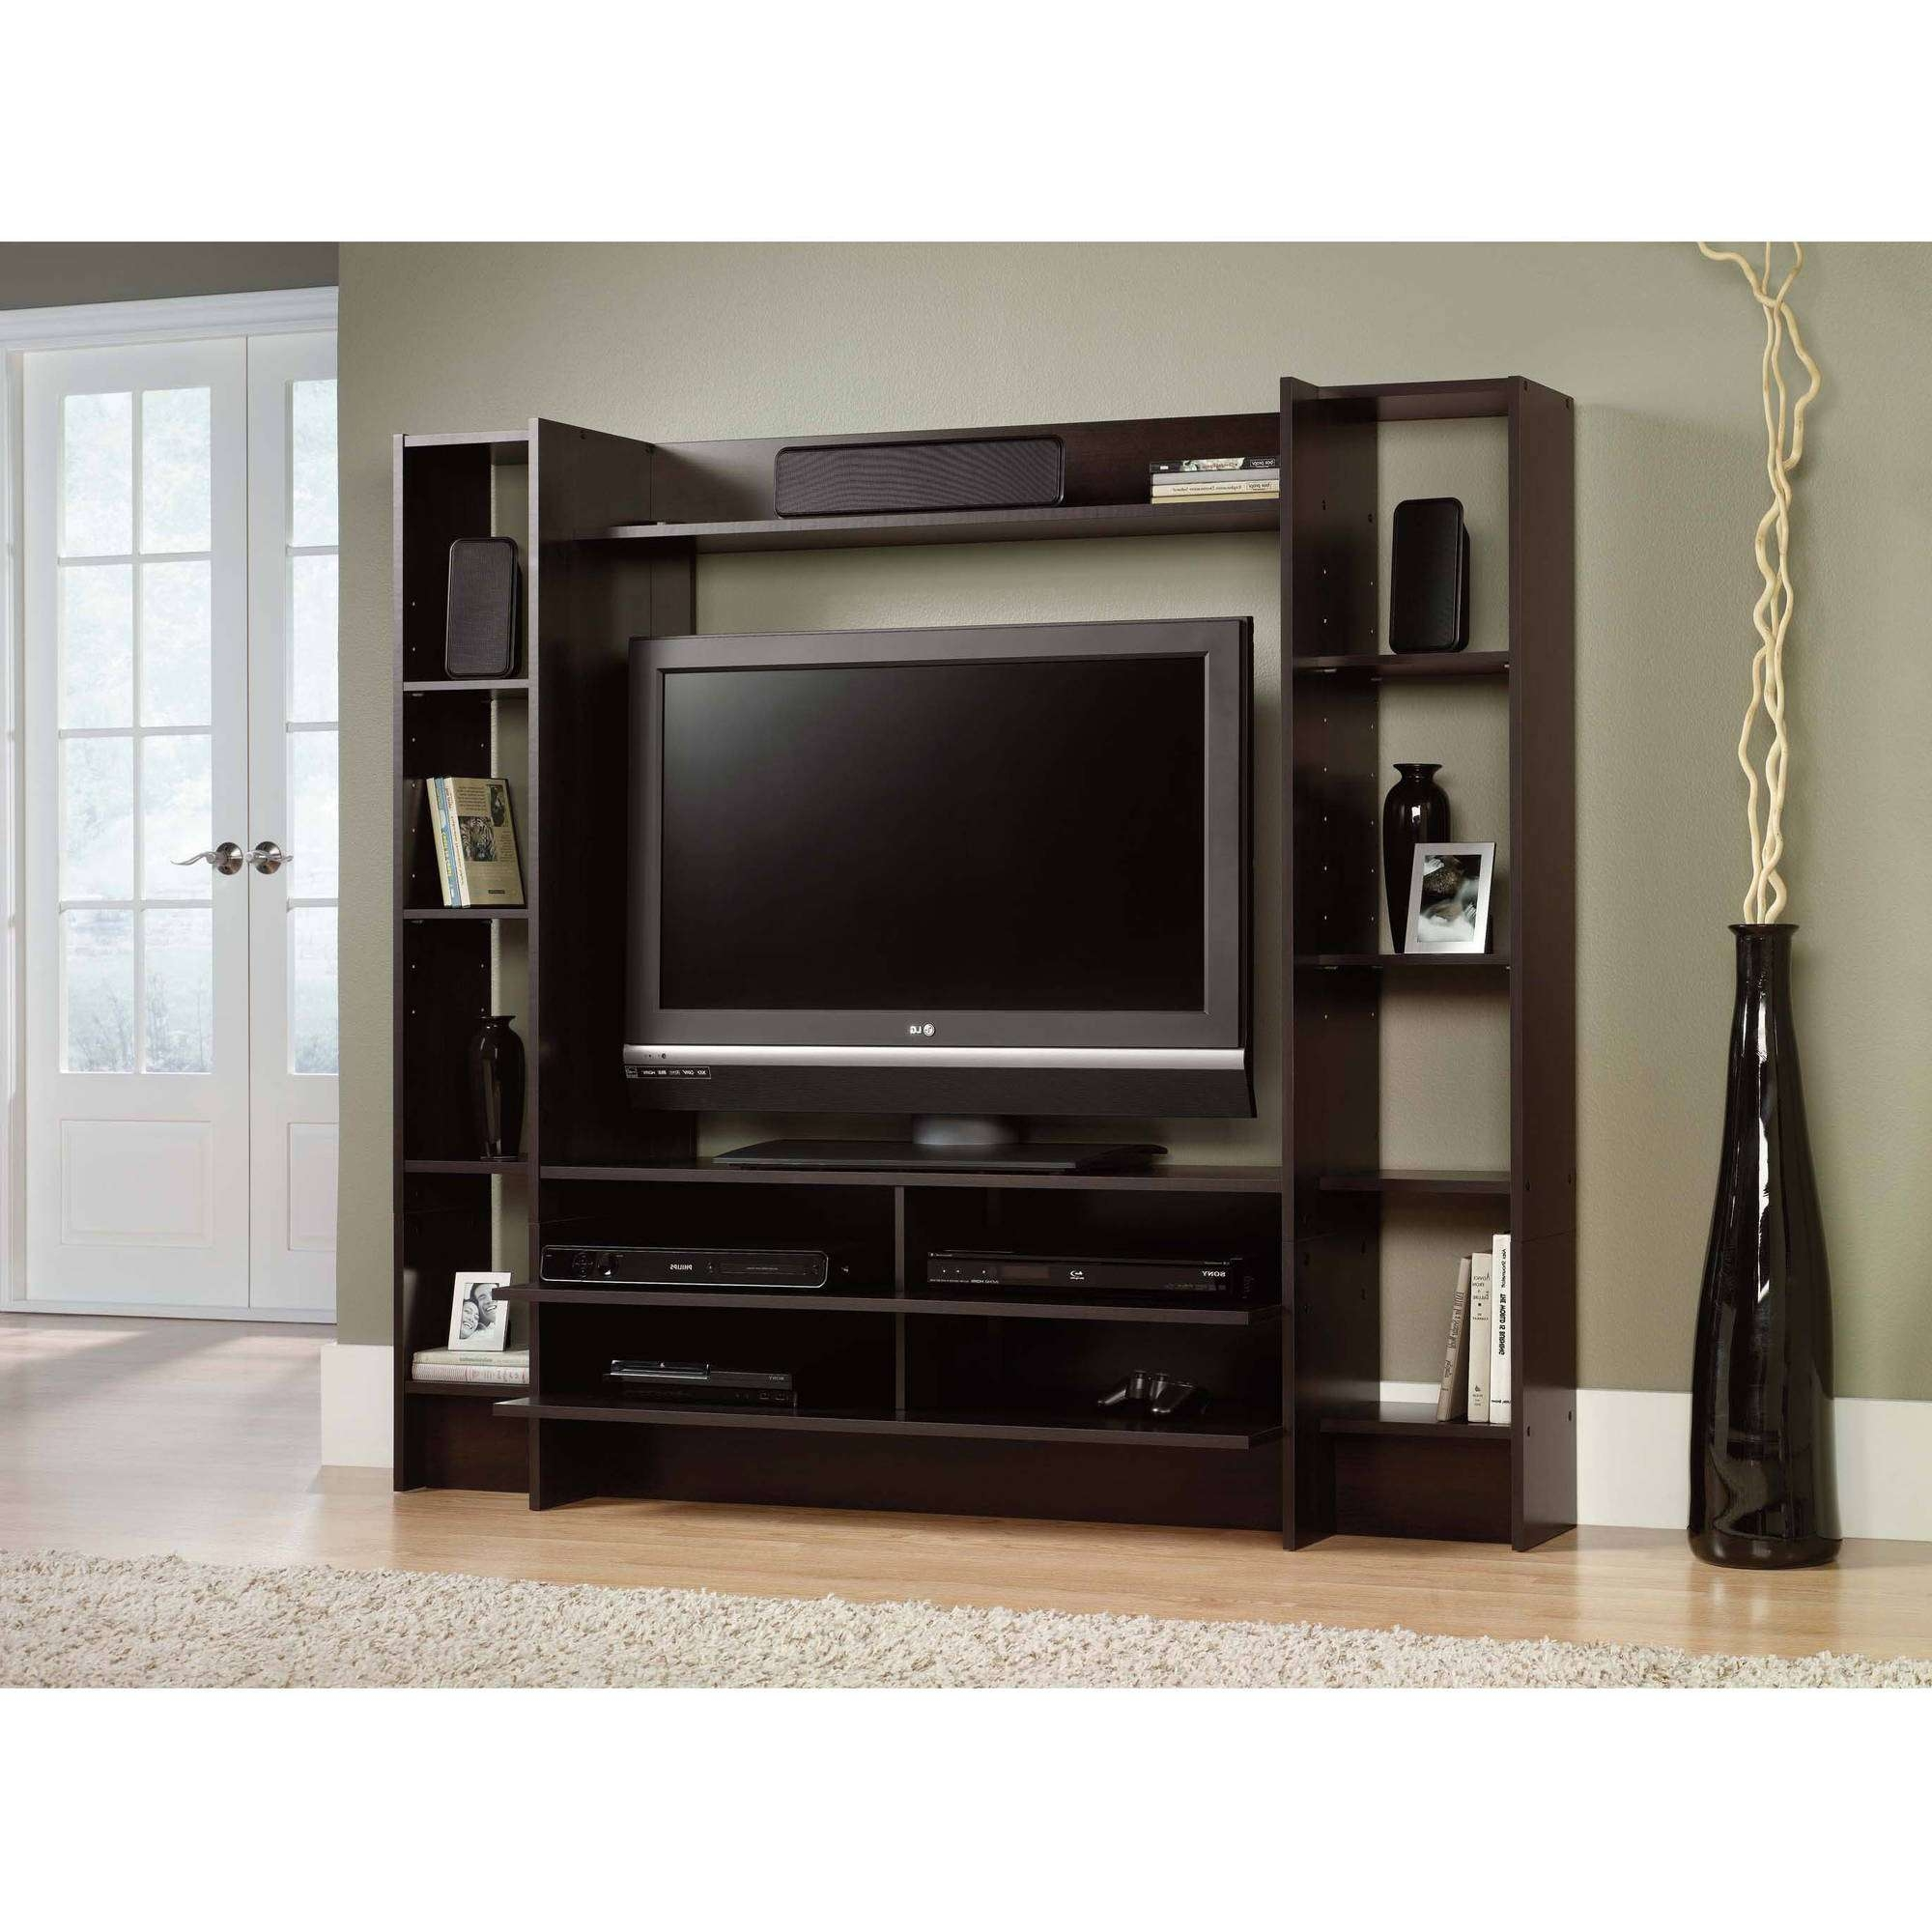 Excellent Wall Media Cabinet Mounted Console Walmart Brown Wooden With Regard To Tv Cabinets With Storage (View 8 of 20)